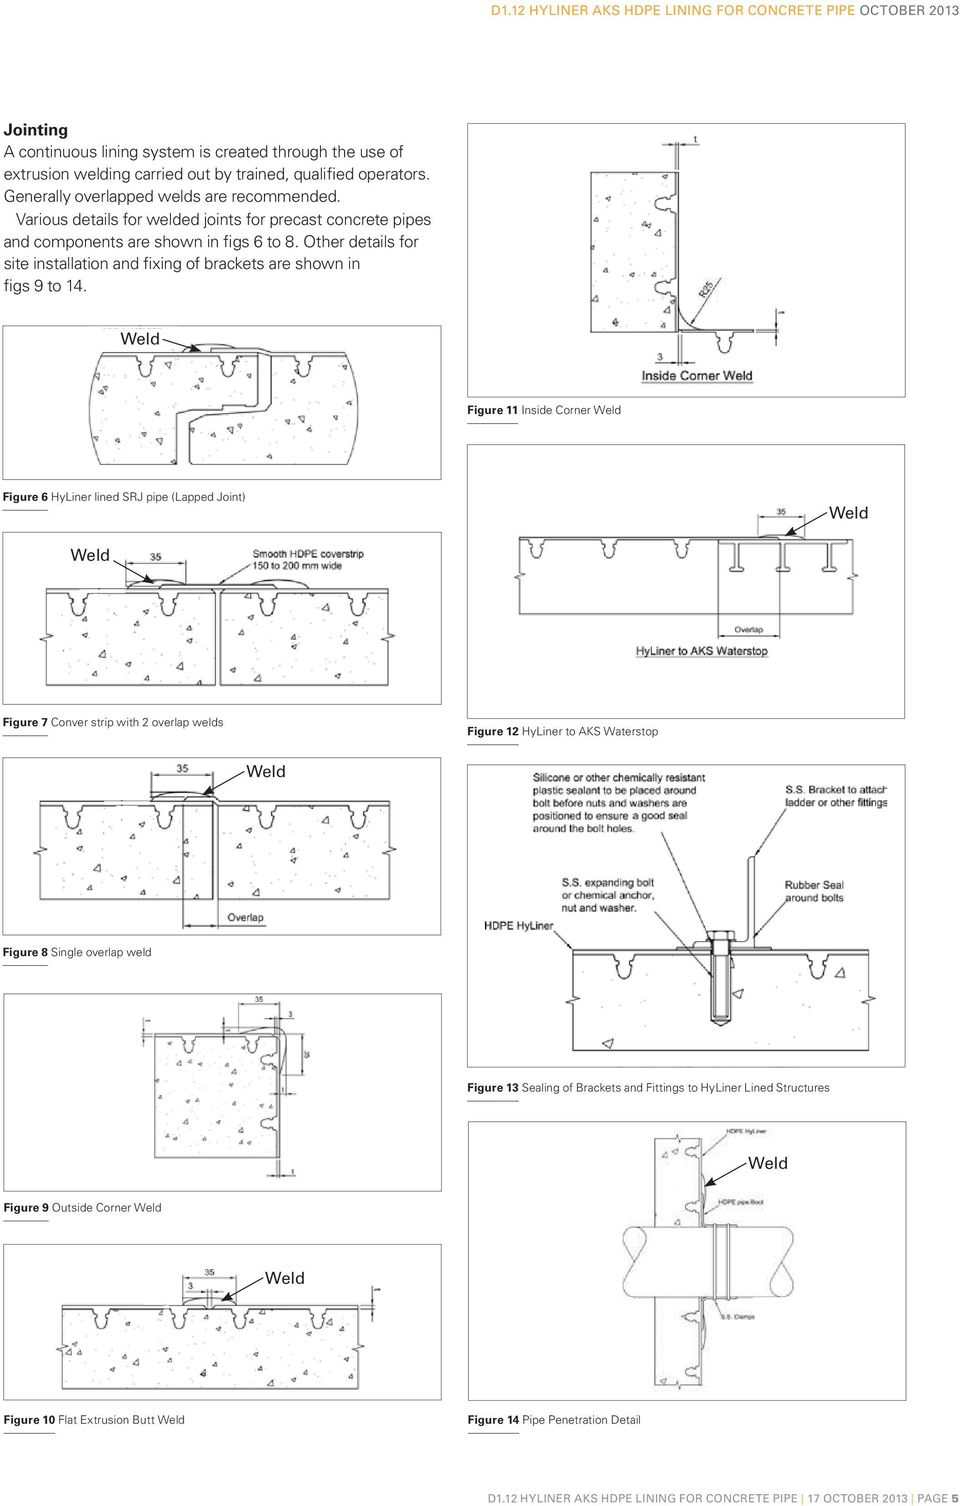 Other details for site installation and fixing of brackets are shown in figs 9 to 14.